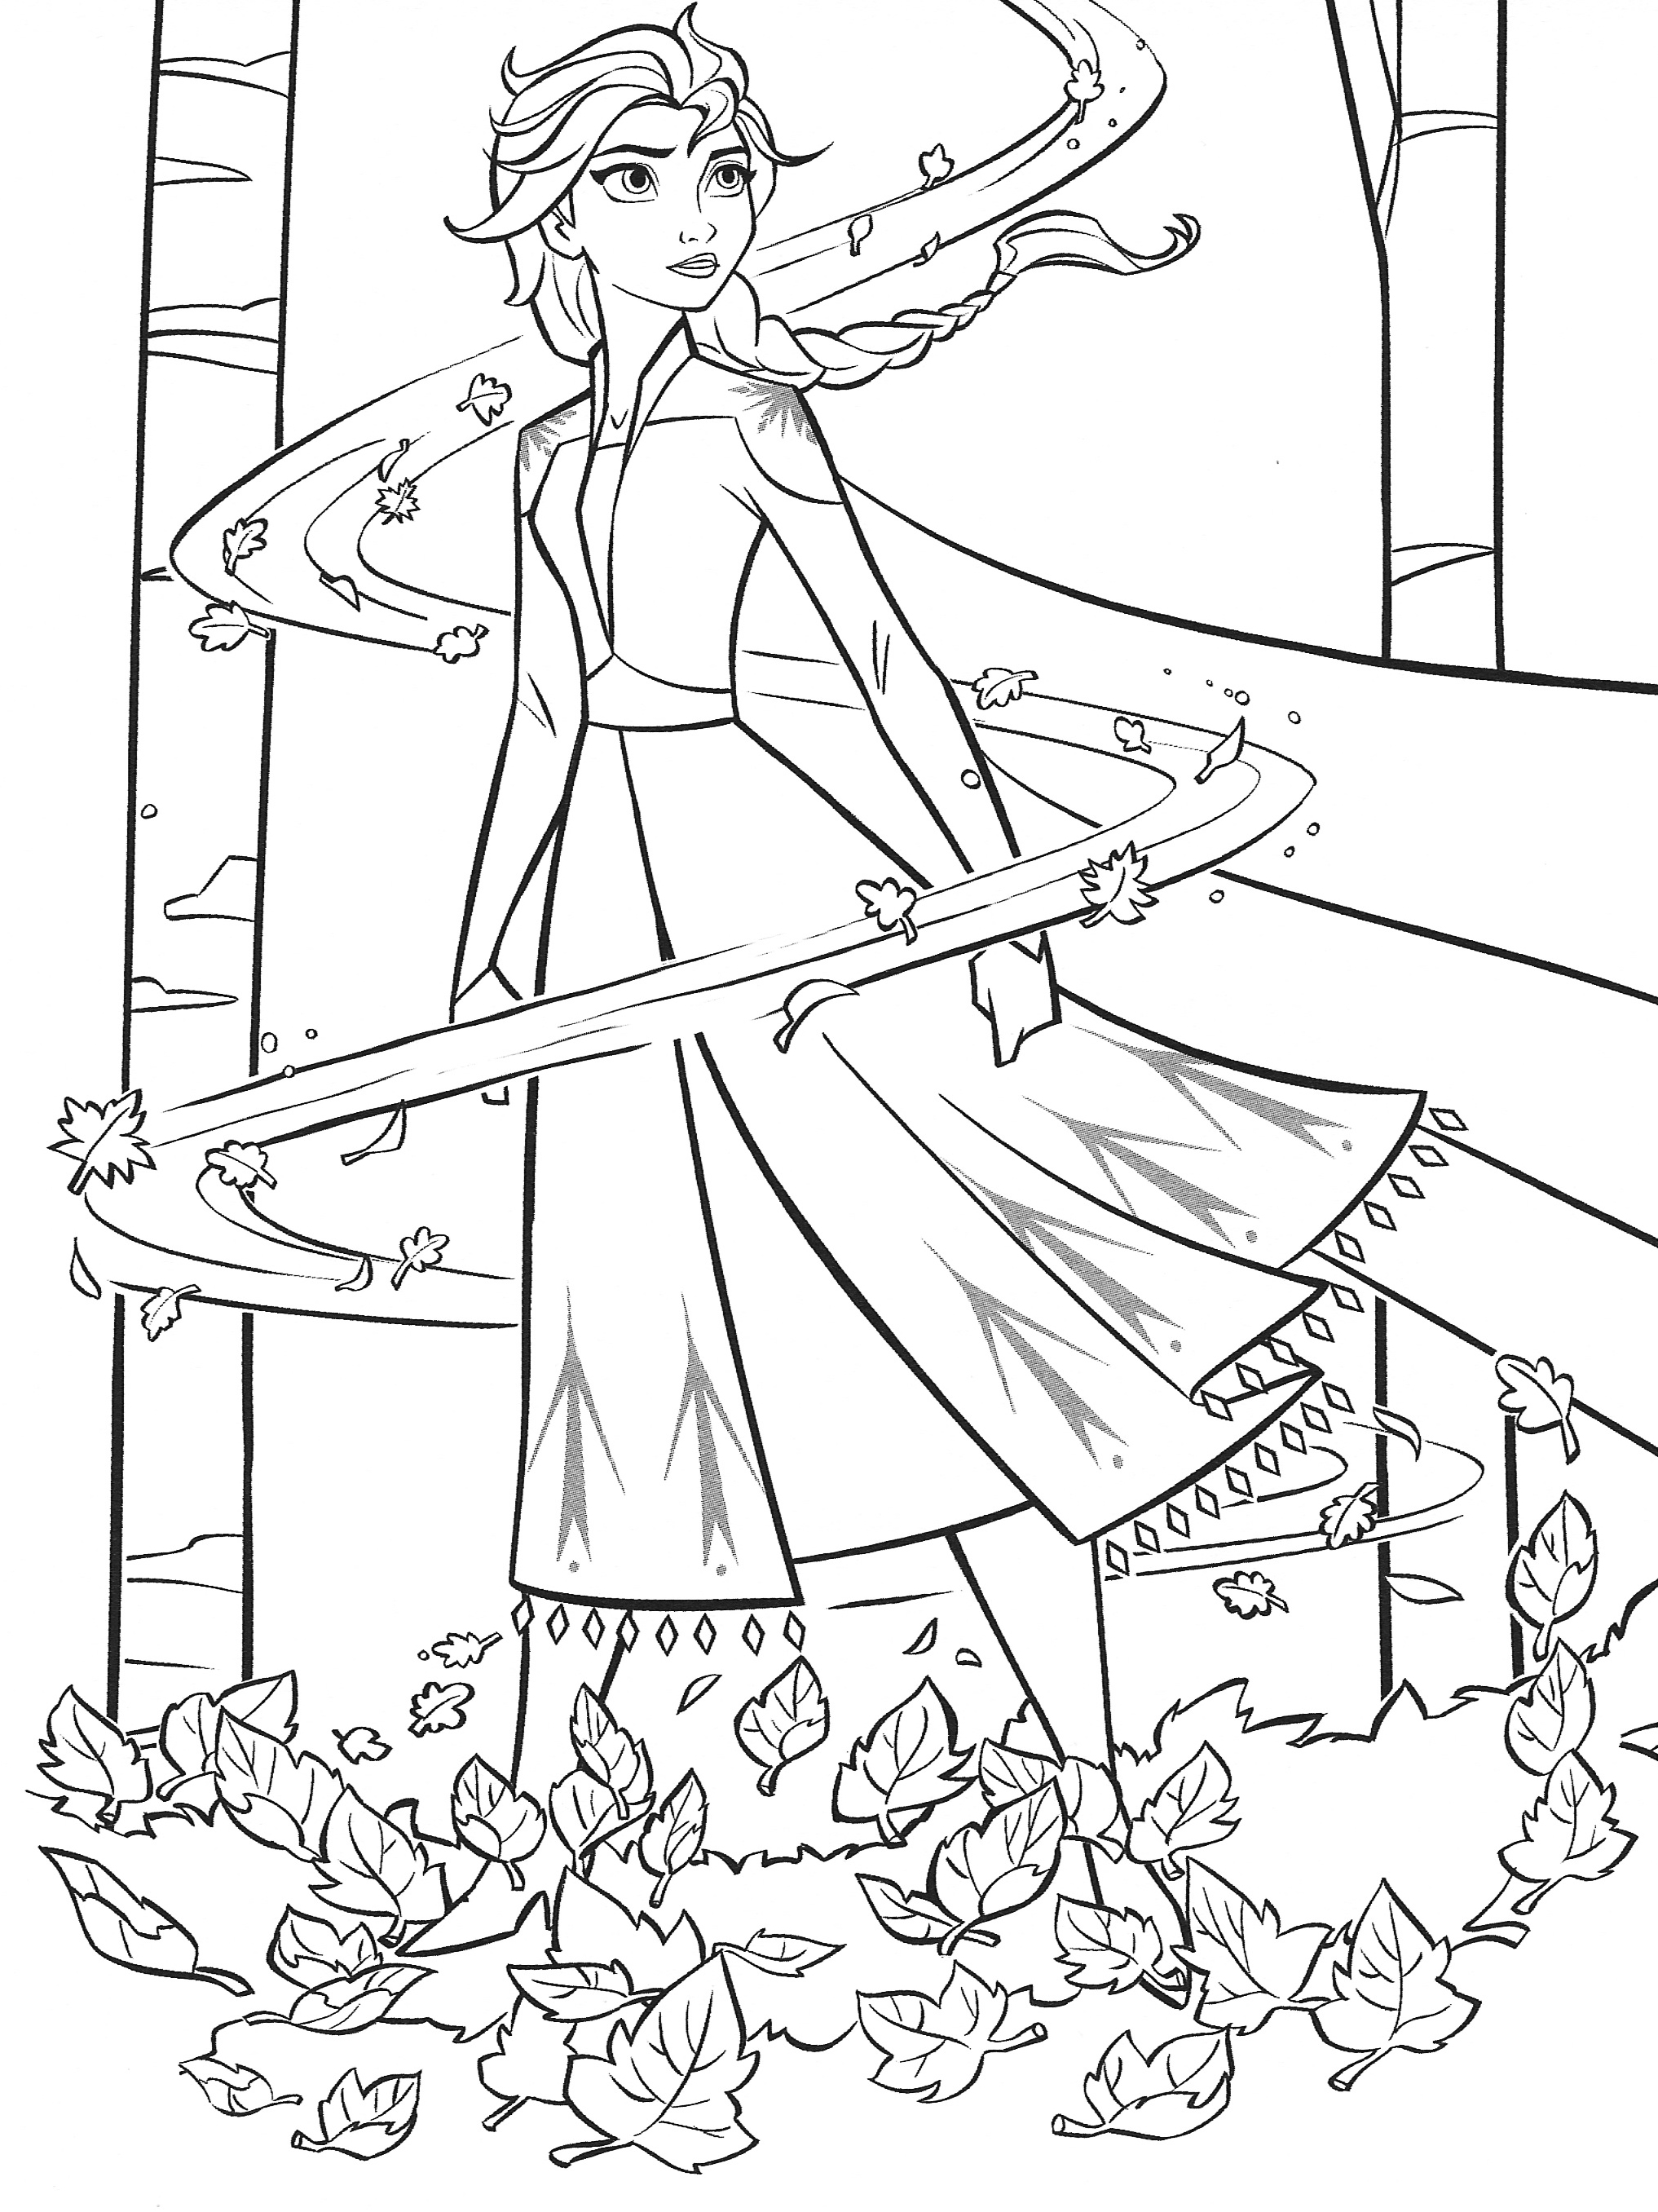 frozen 2 coloring pages frozen 2 coloring pages coloring home pages 2 frozen coloring